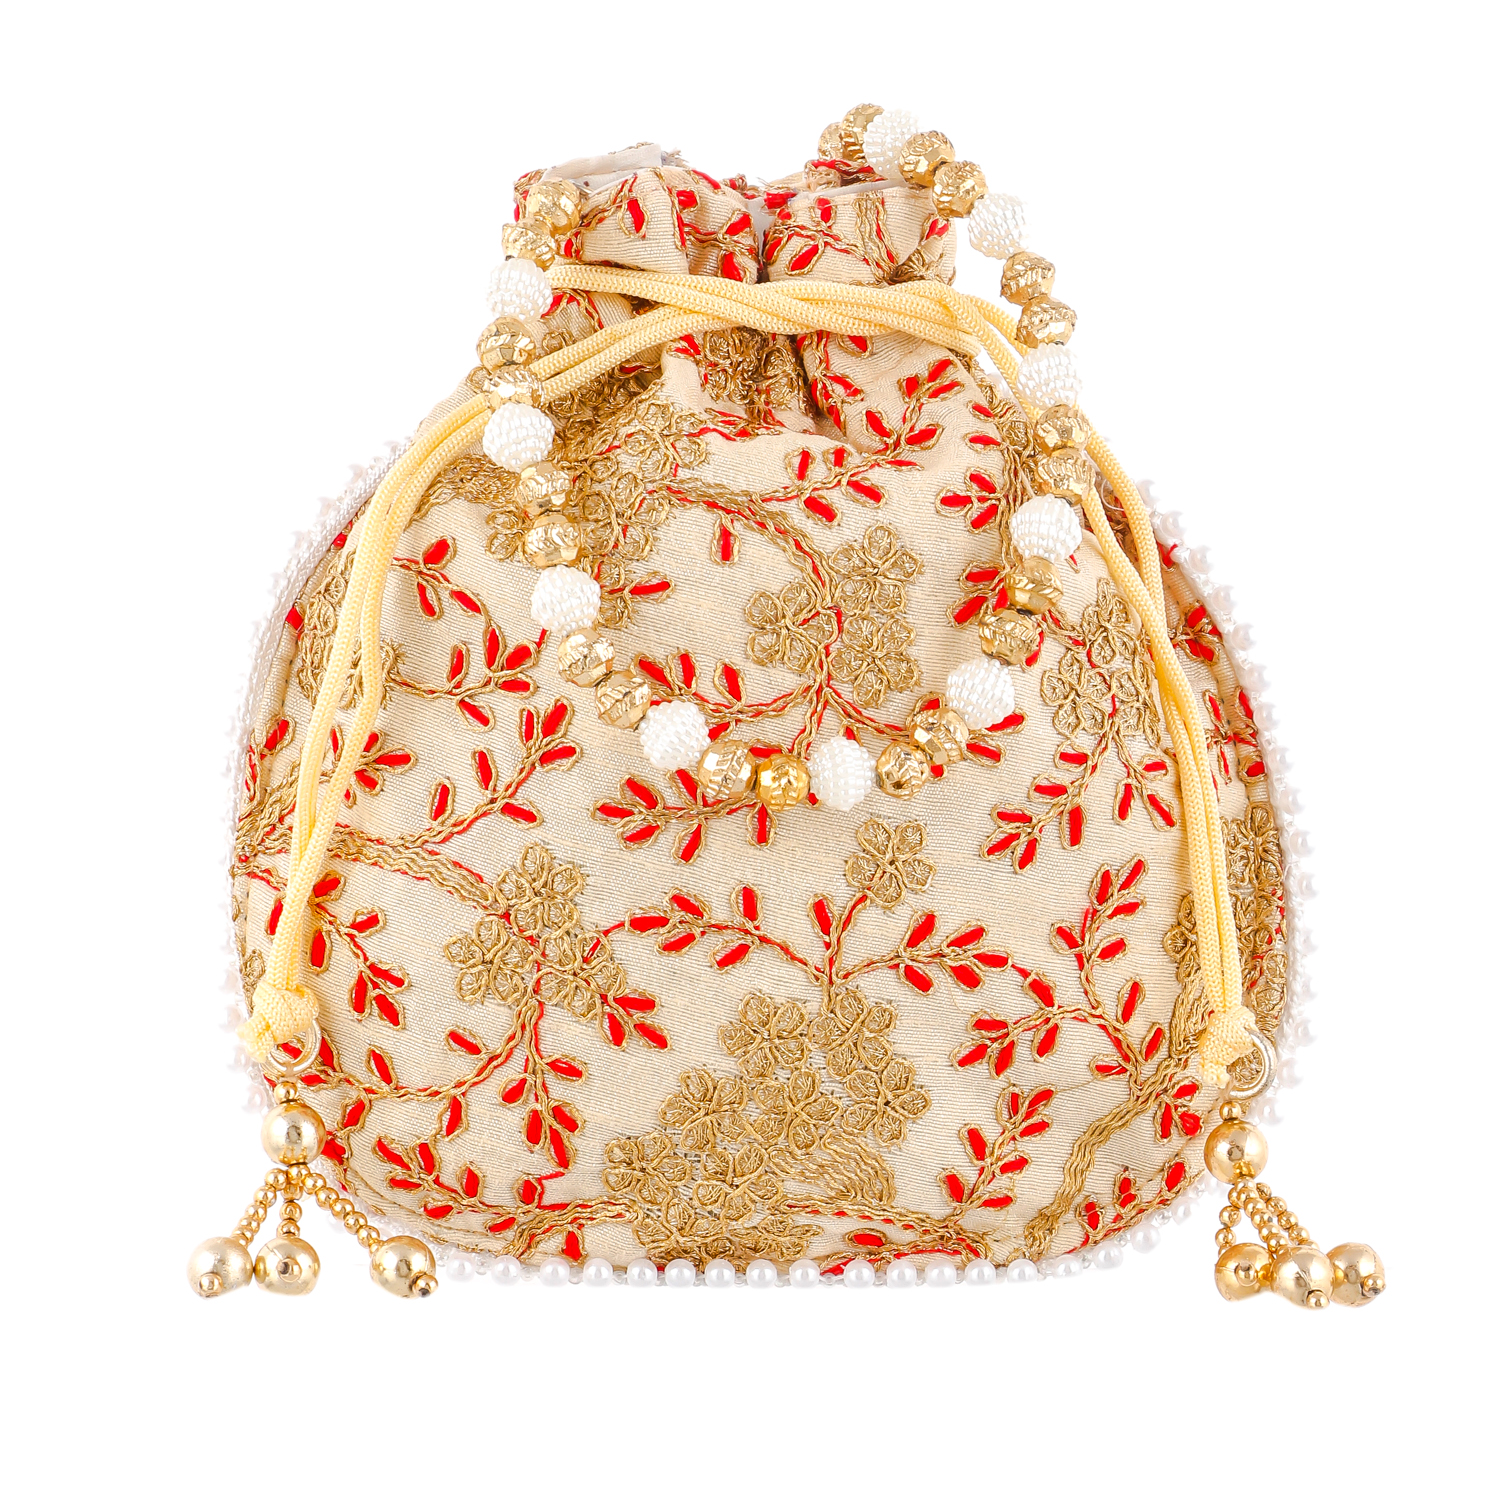 Kuber Industries Ethnic Clutch Silk 2 Pieces Potli Batwa Pouch Bag with Beadwork Gift For Women (Cream) - CTKTC23014